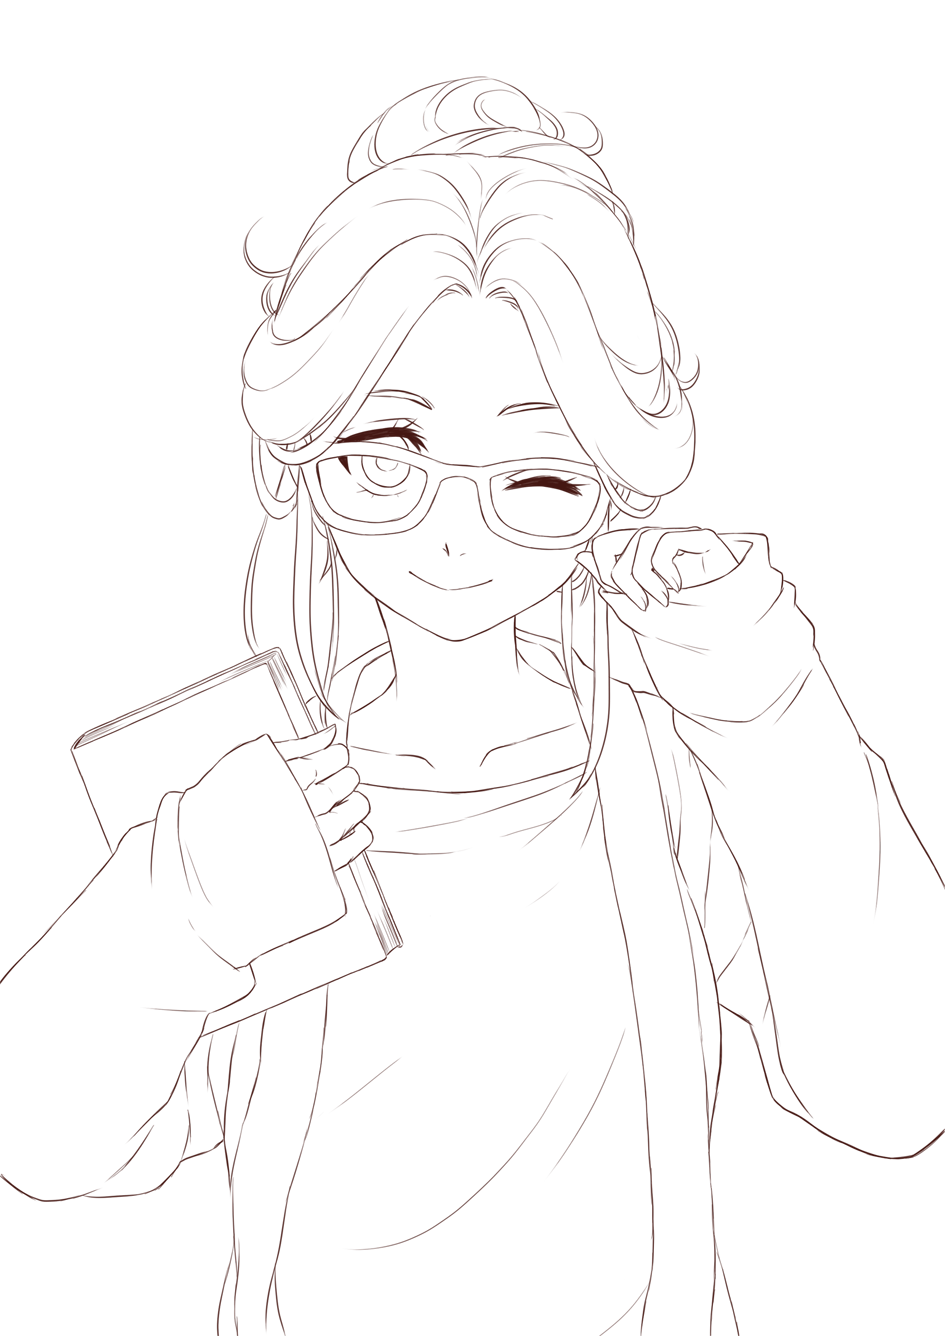 anime lineart transparent.